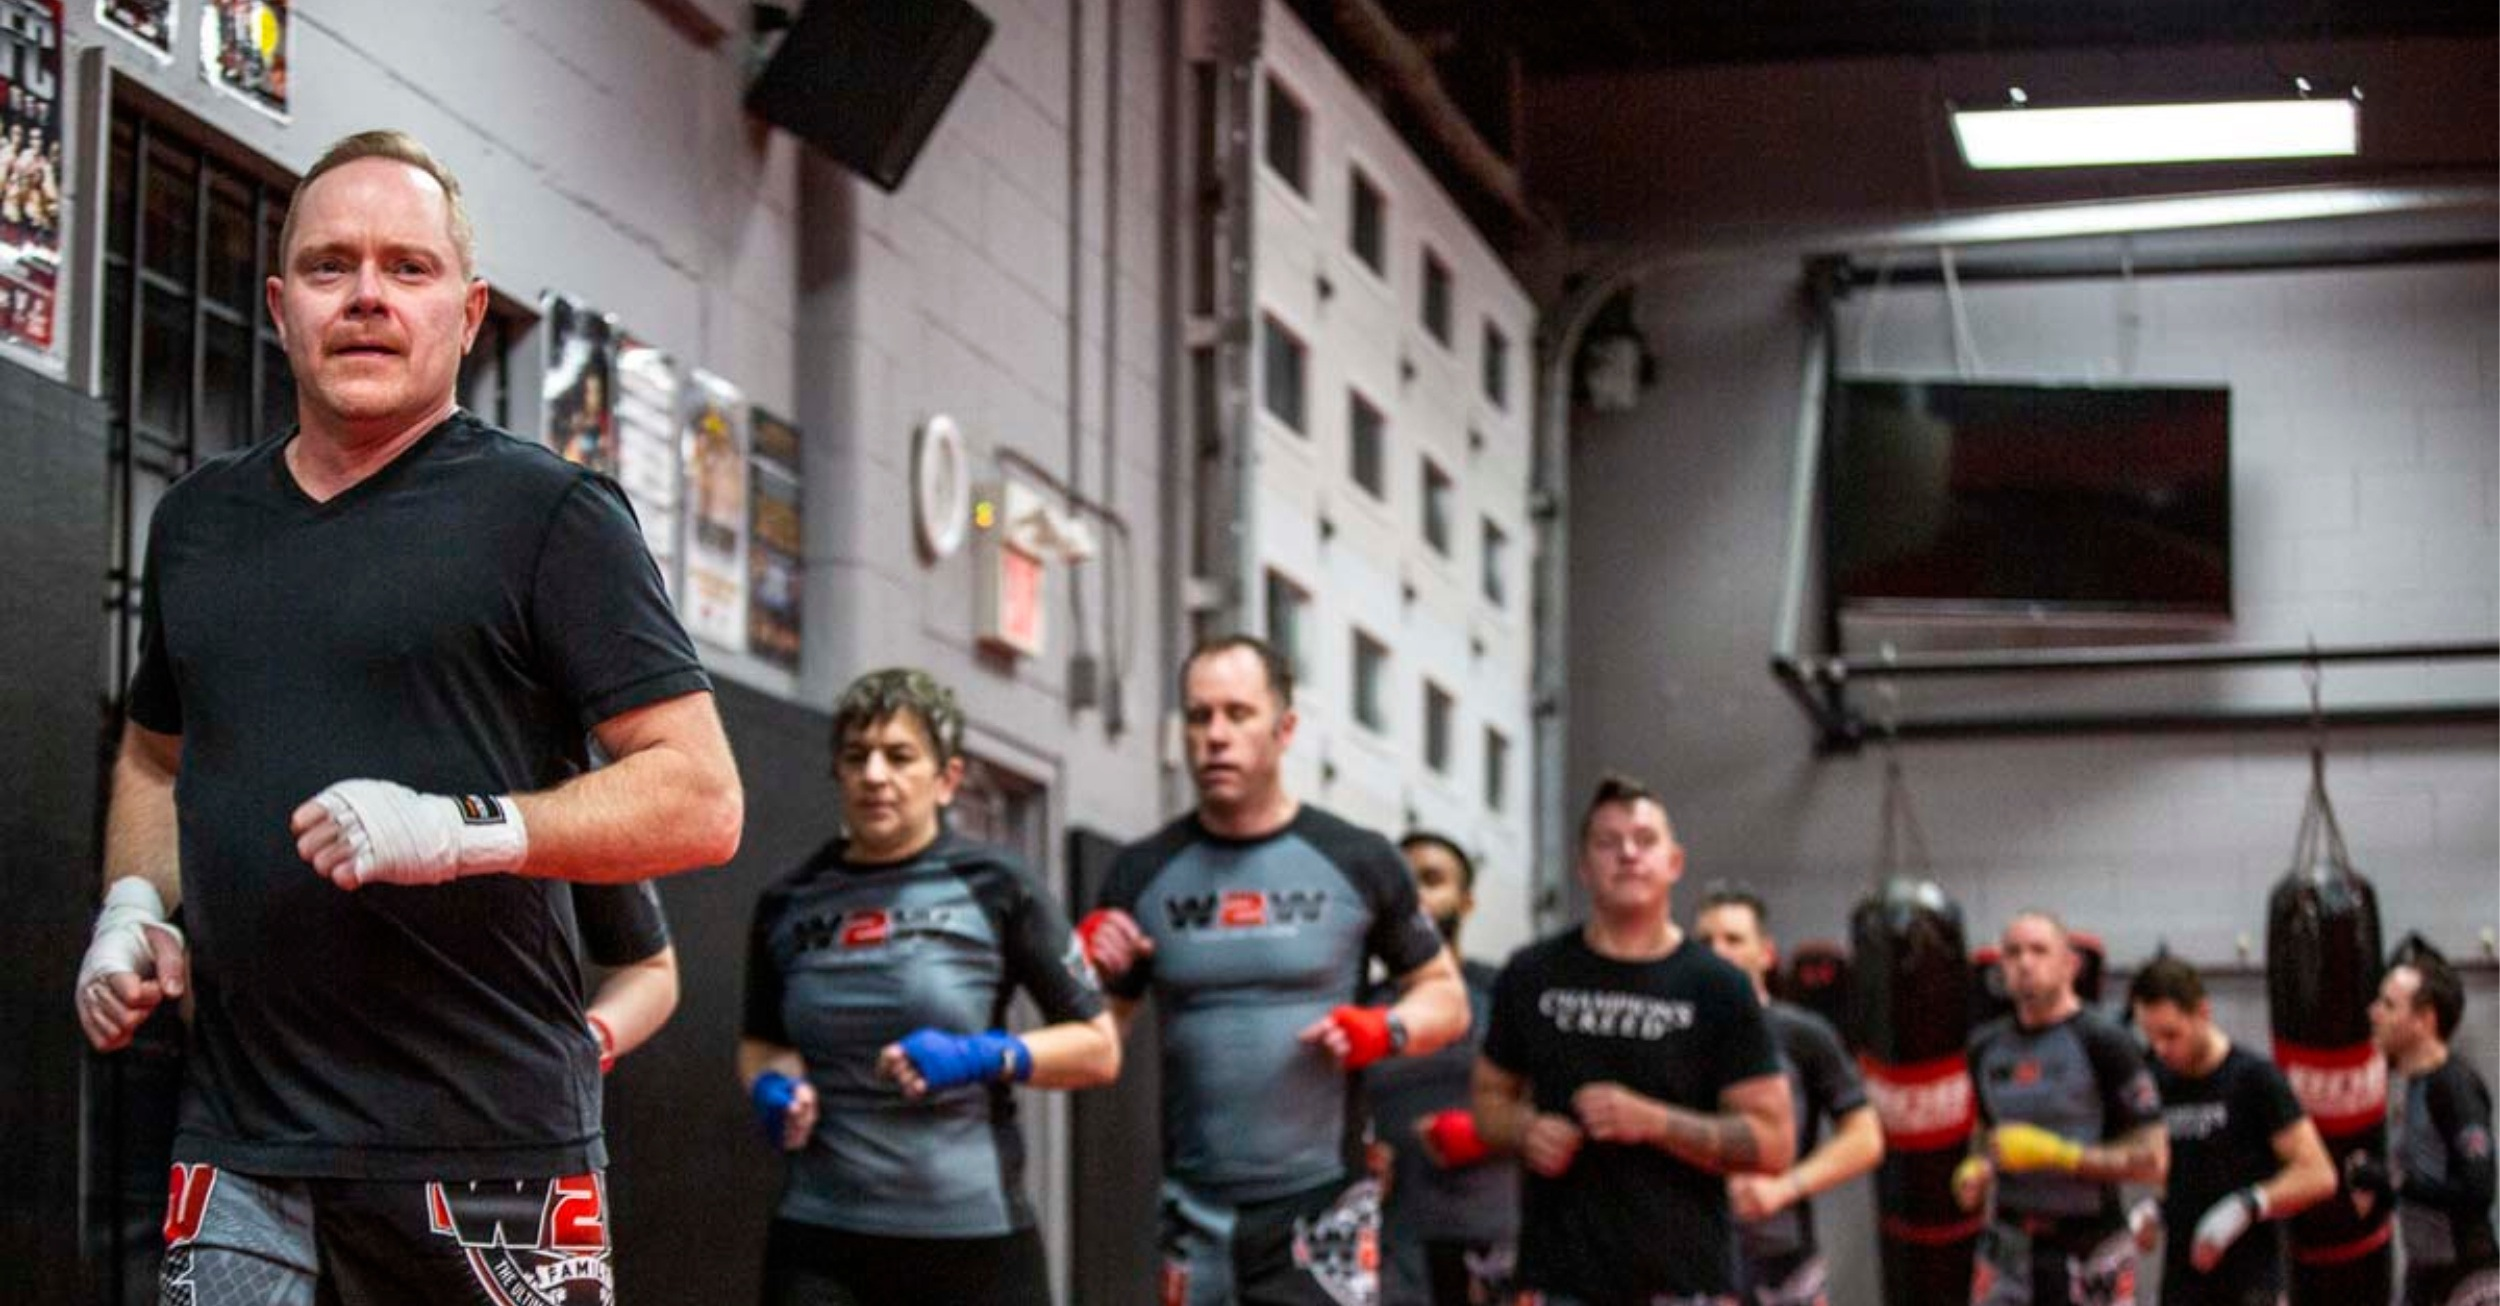 Why Should I Join this Elite MMA Program Instead of a Regular Class